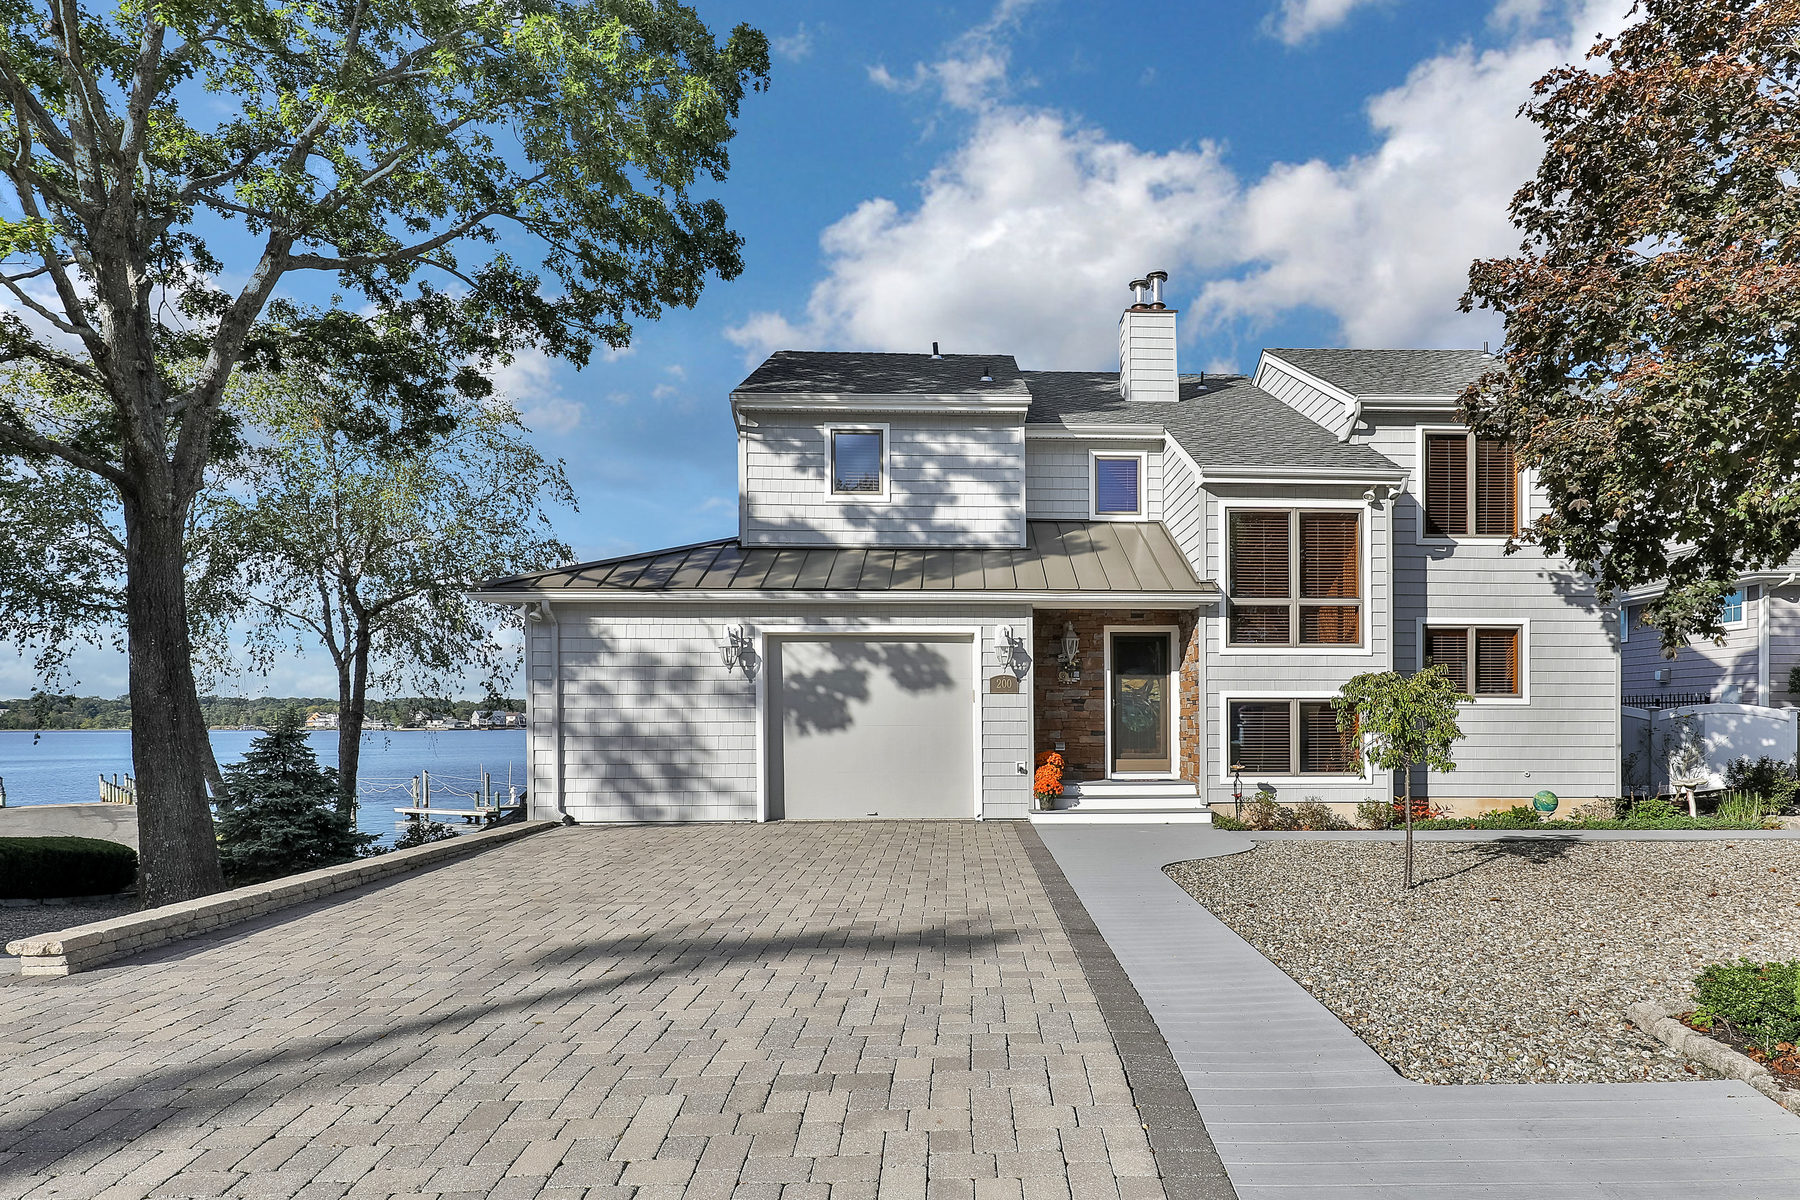 Villa per Vendita alle ore One Of A Kind Riverfront Home 200 Prospect Avenue Pine Beach, New Jersey 08741 Stati Uniti